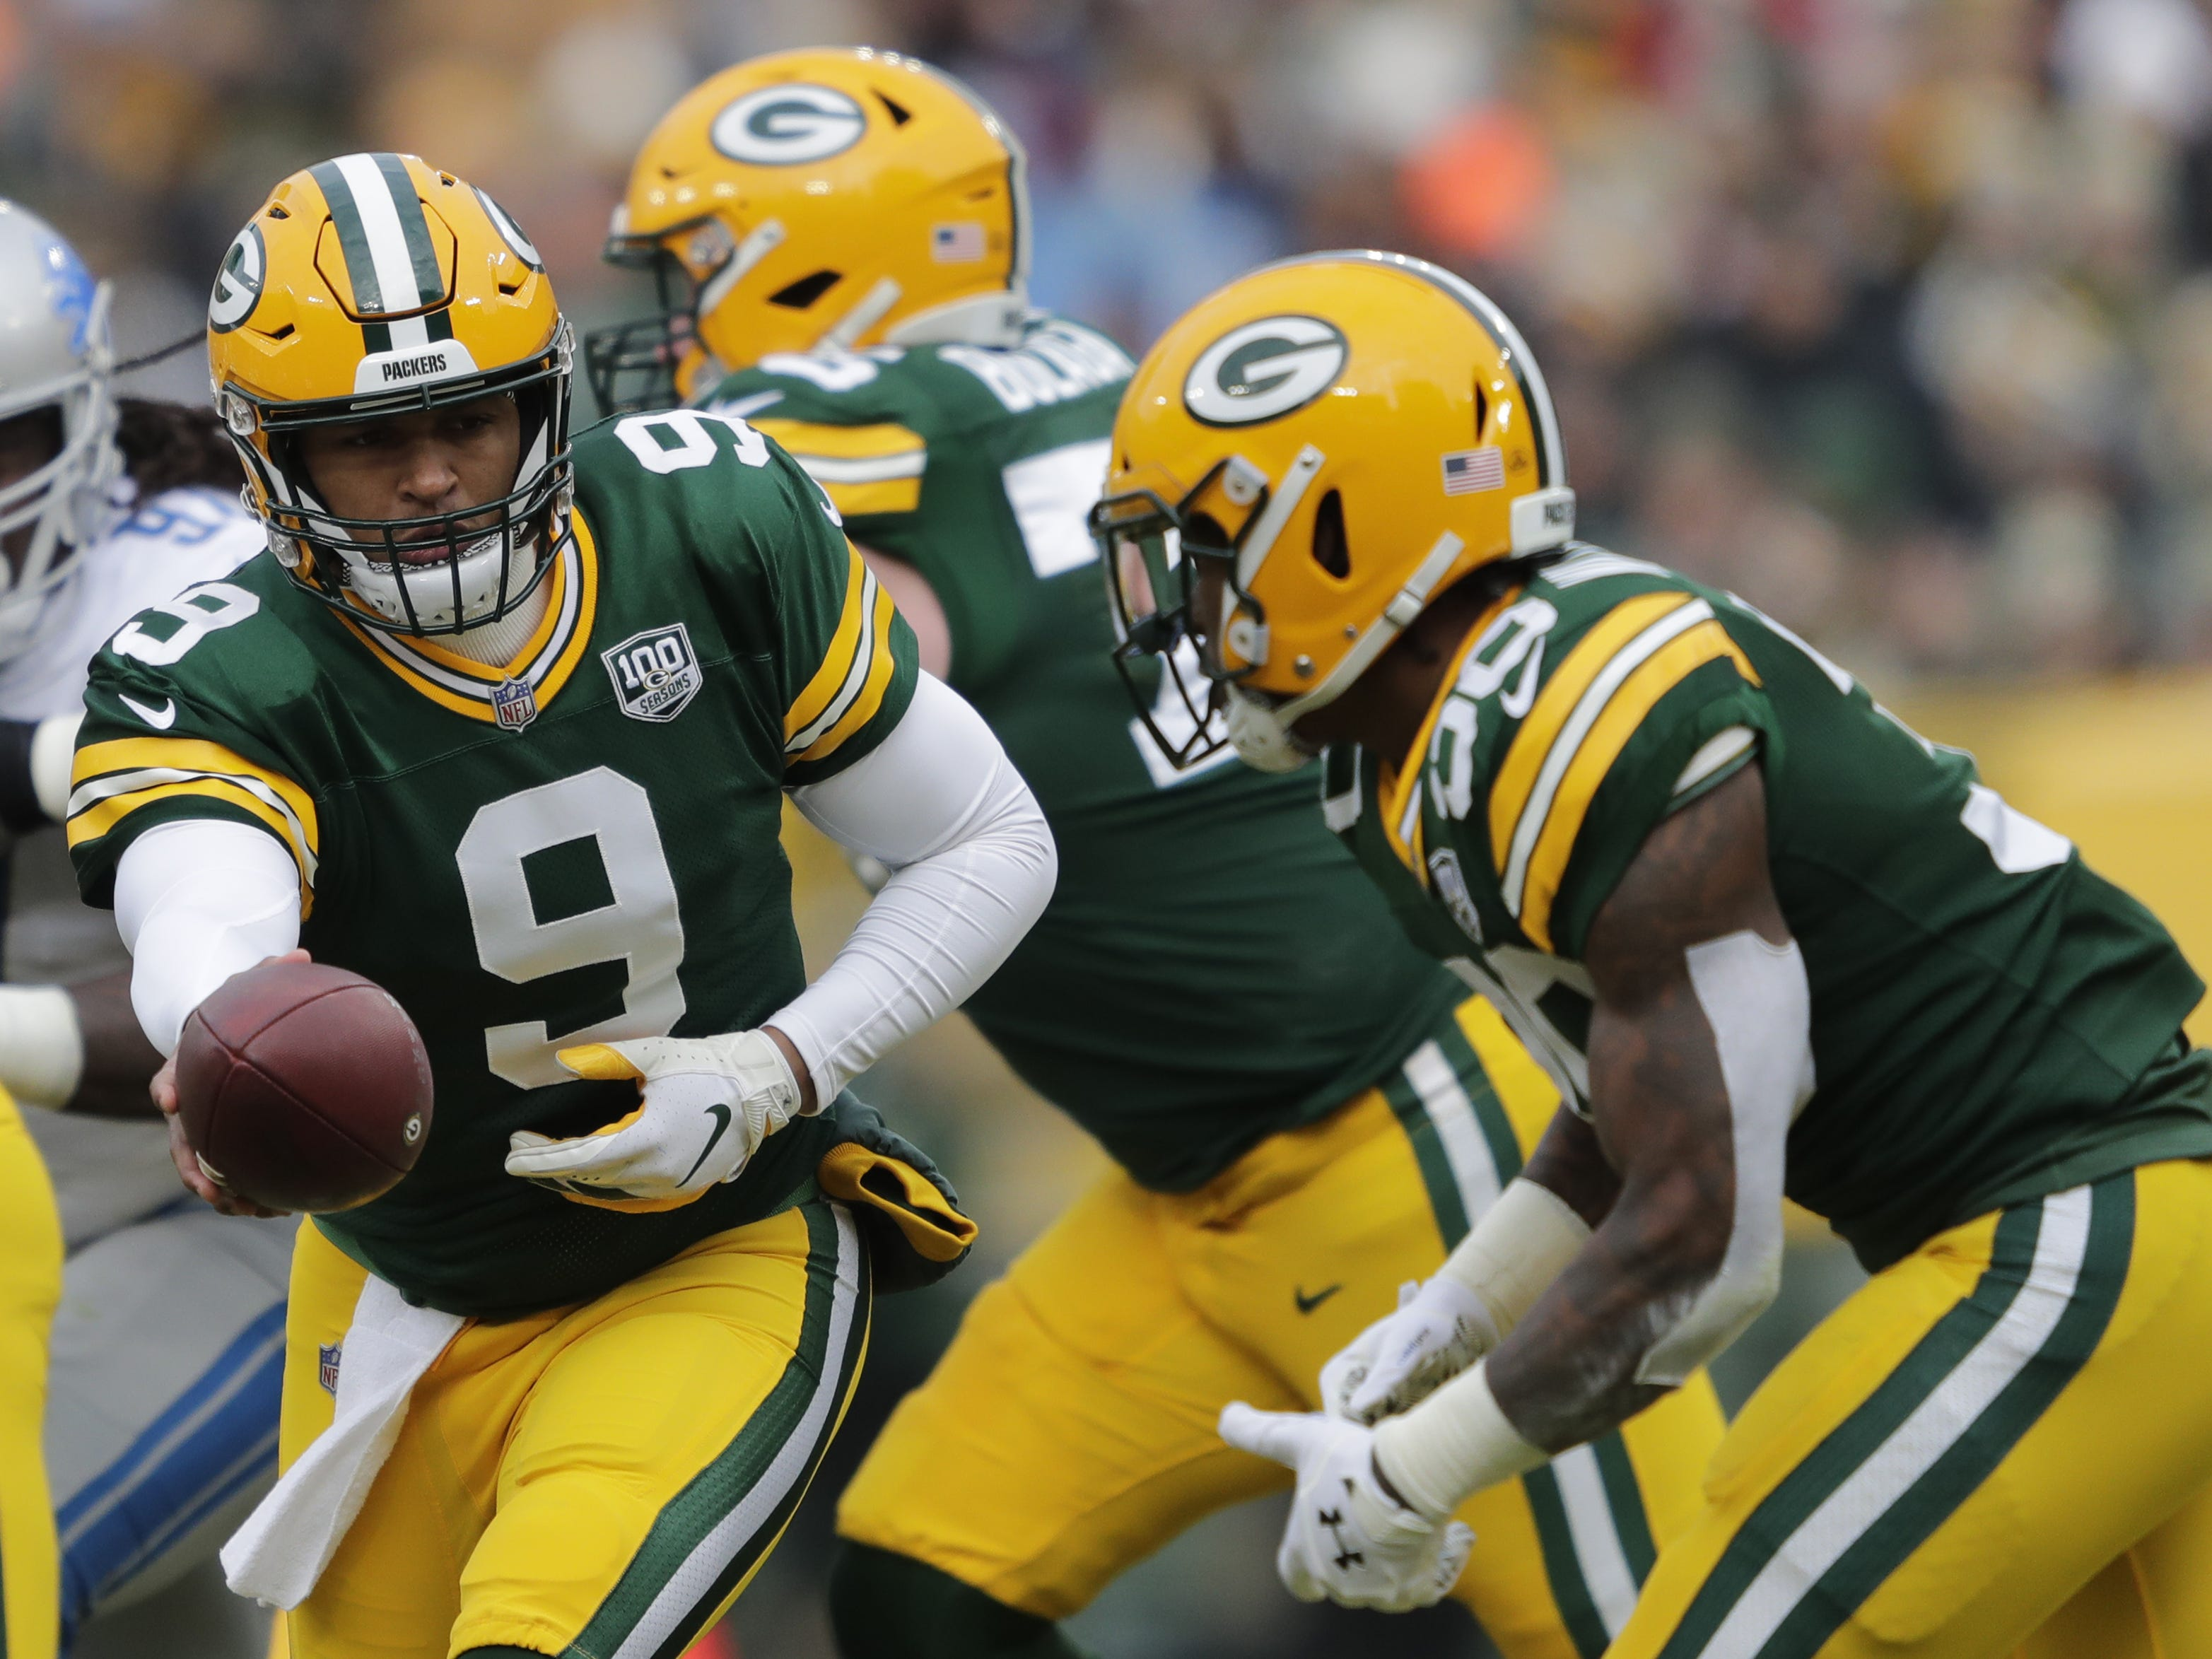 Green Bay Packers quarterback DeShone Kizer (9) hands off the ball to running back Jamaal Williams (30) against the Lions Sunday, December 30, 2018, at Lambeau Field in Green Bay, Wis.  Dan Powers/USA TODAY NETWORK-Wisconsin